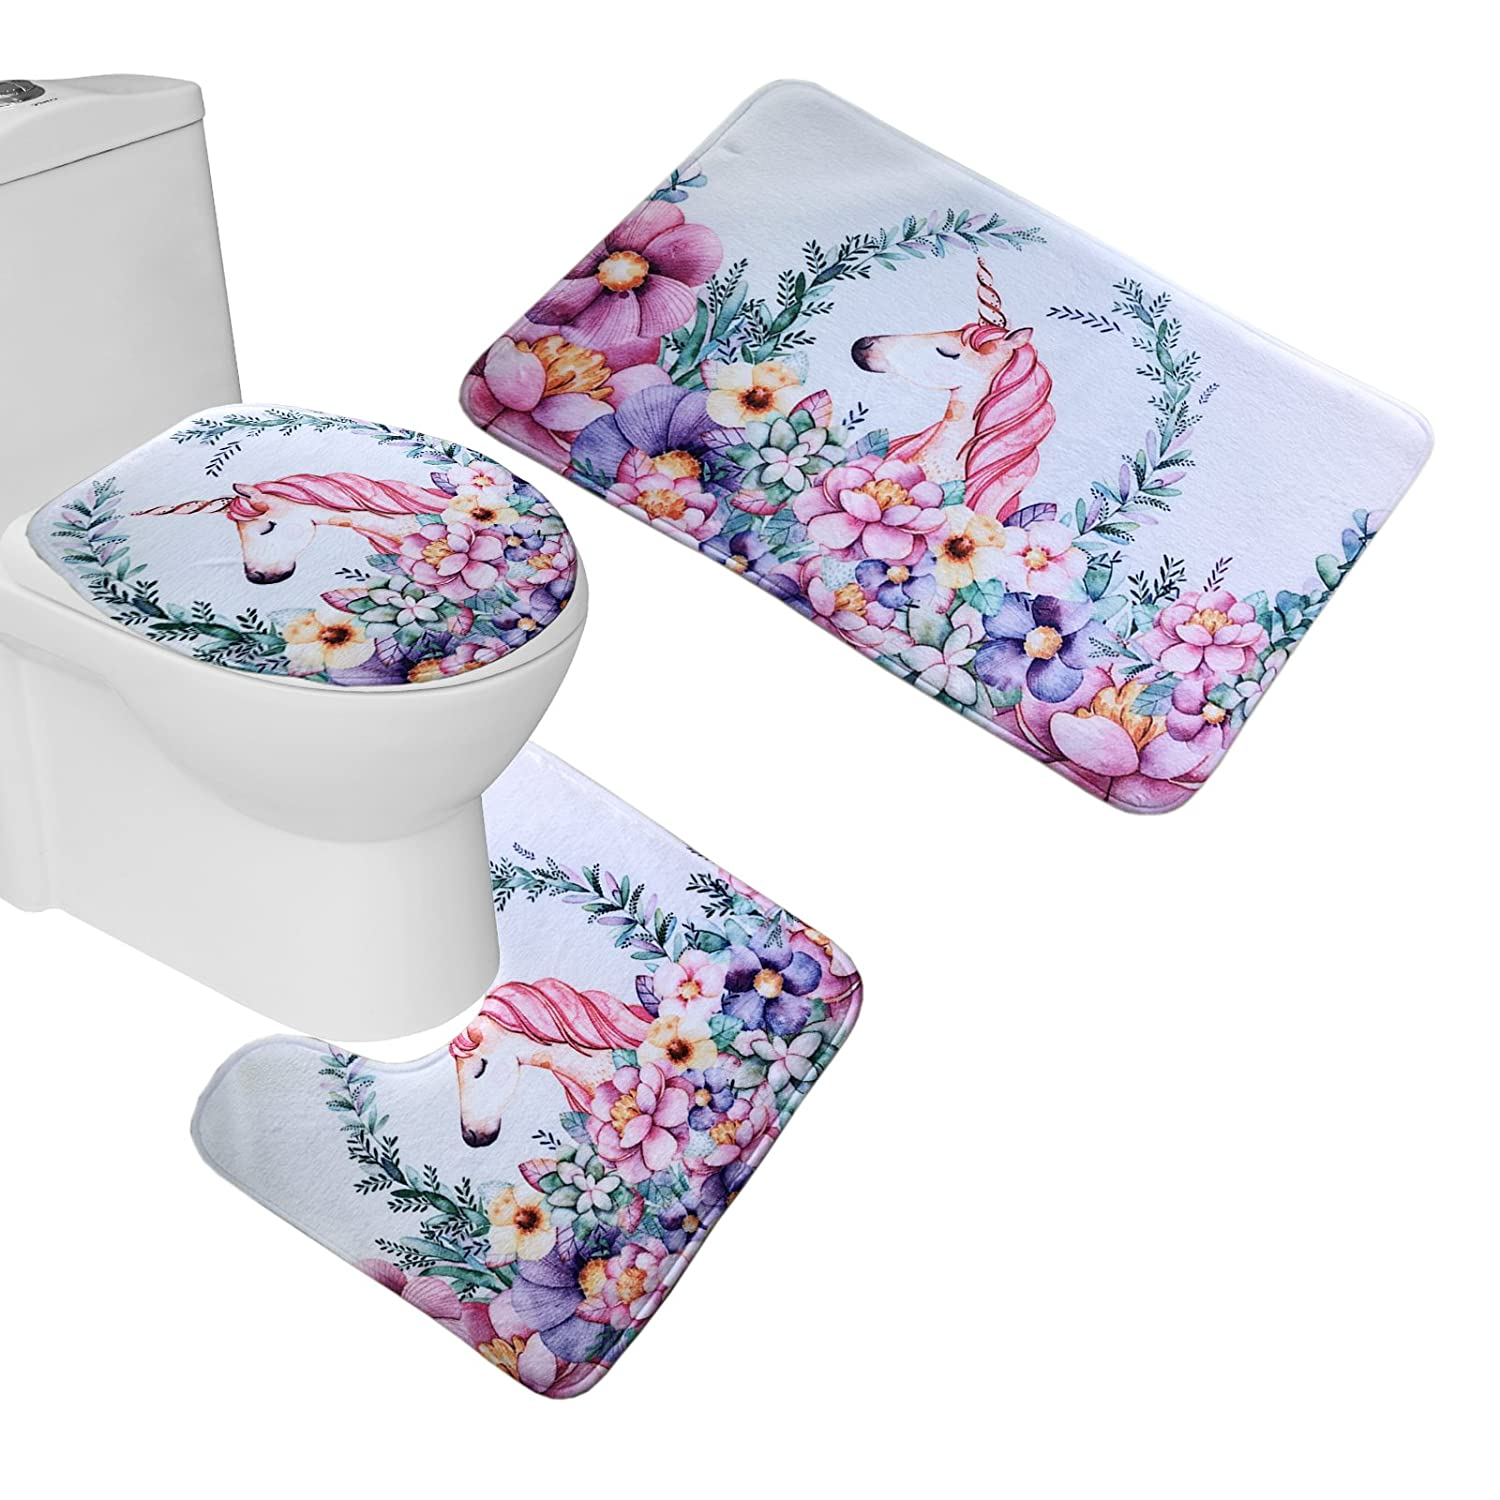 Bearbae 3 Piece Bath Mat Set Bathroom Pedestal Rug + Lid Toilet Cover + Bath Mat Colorful Flowers Unicorn Printed BB